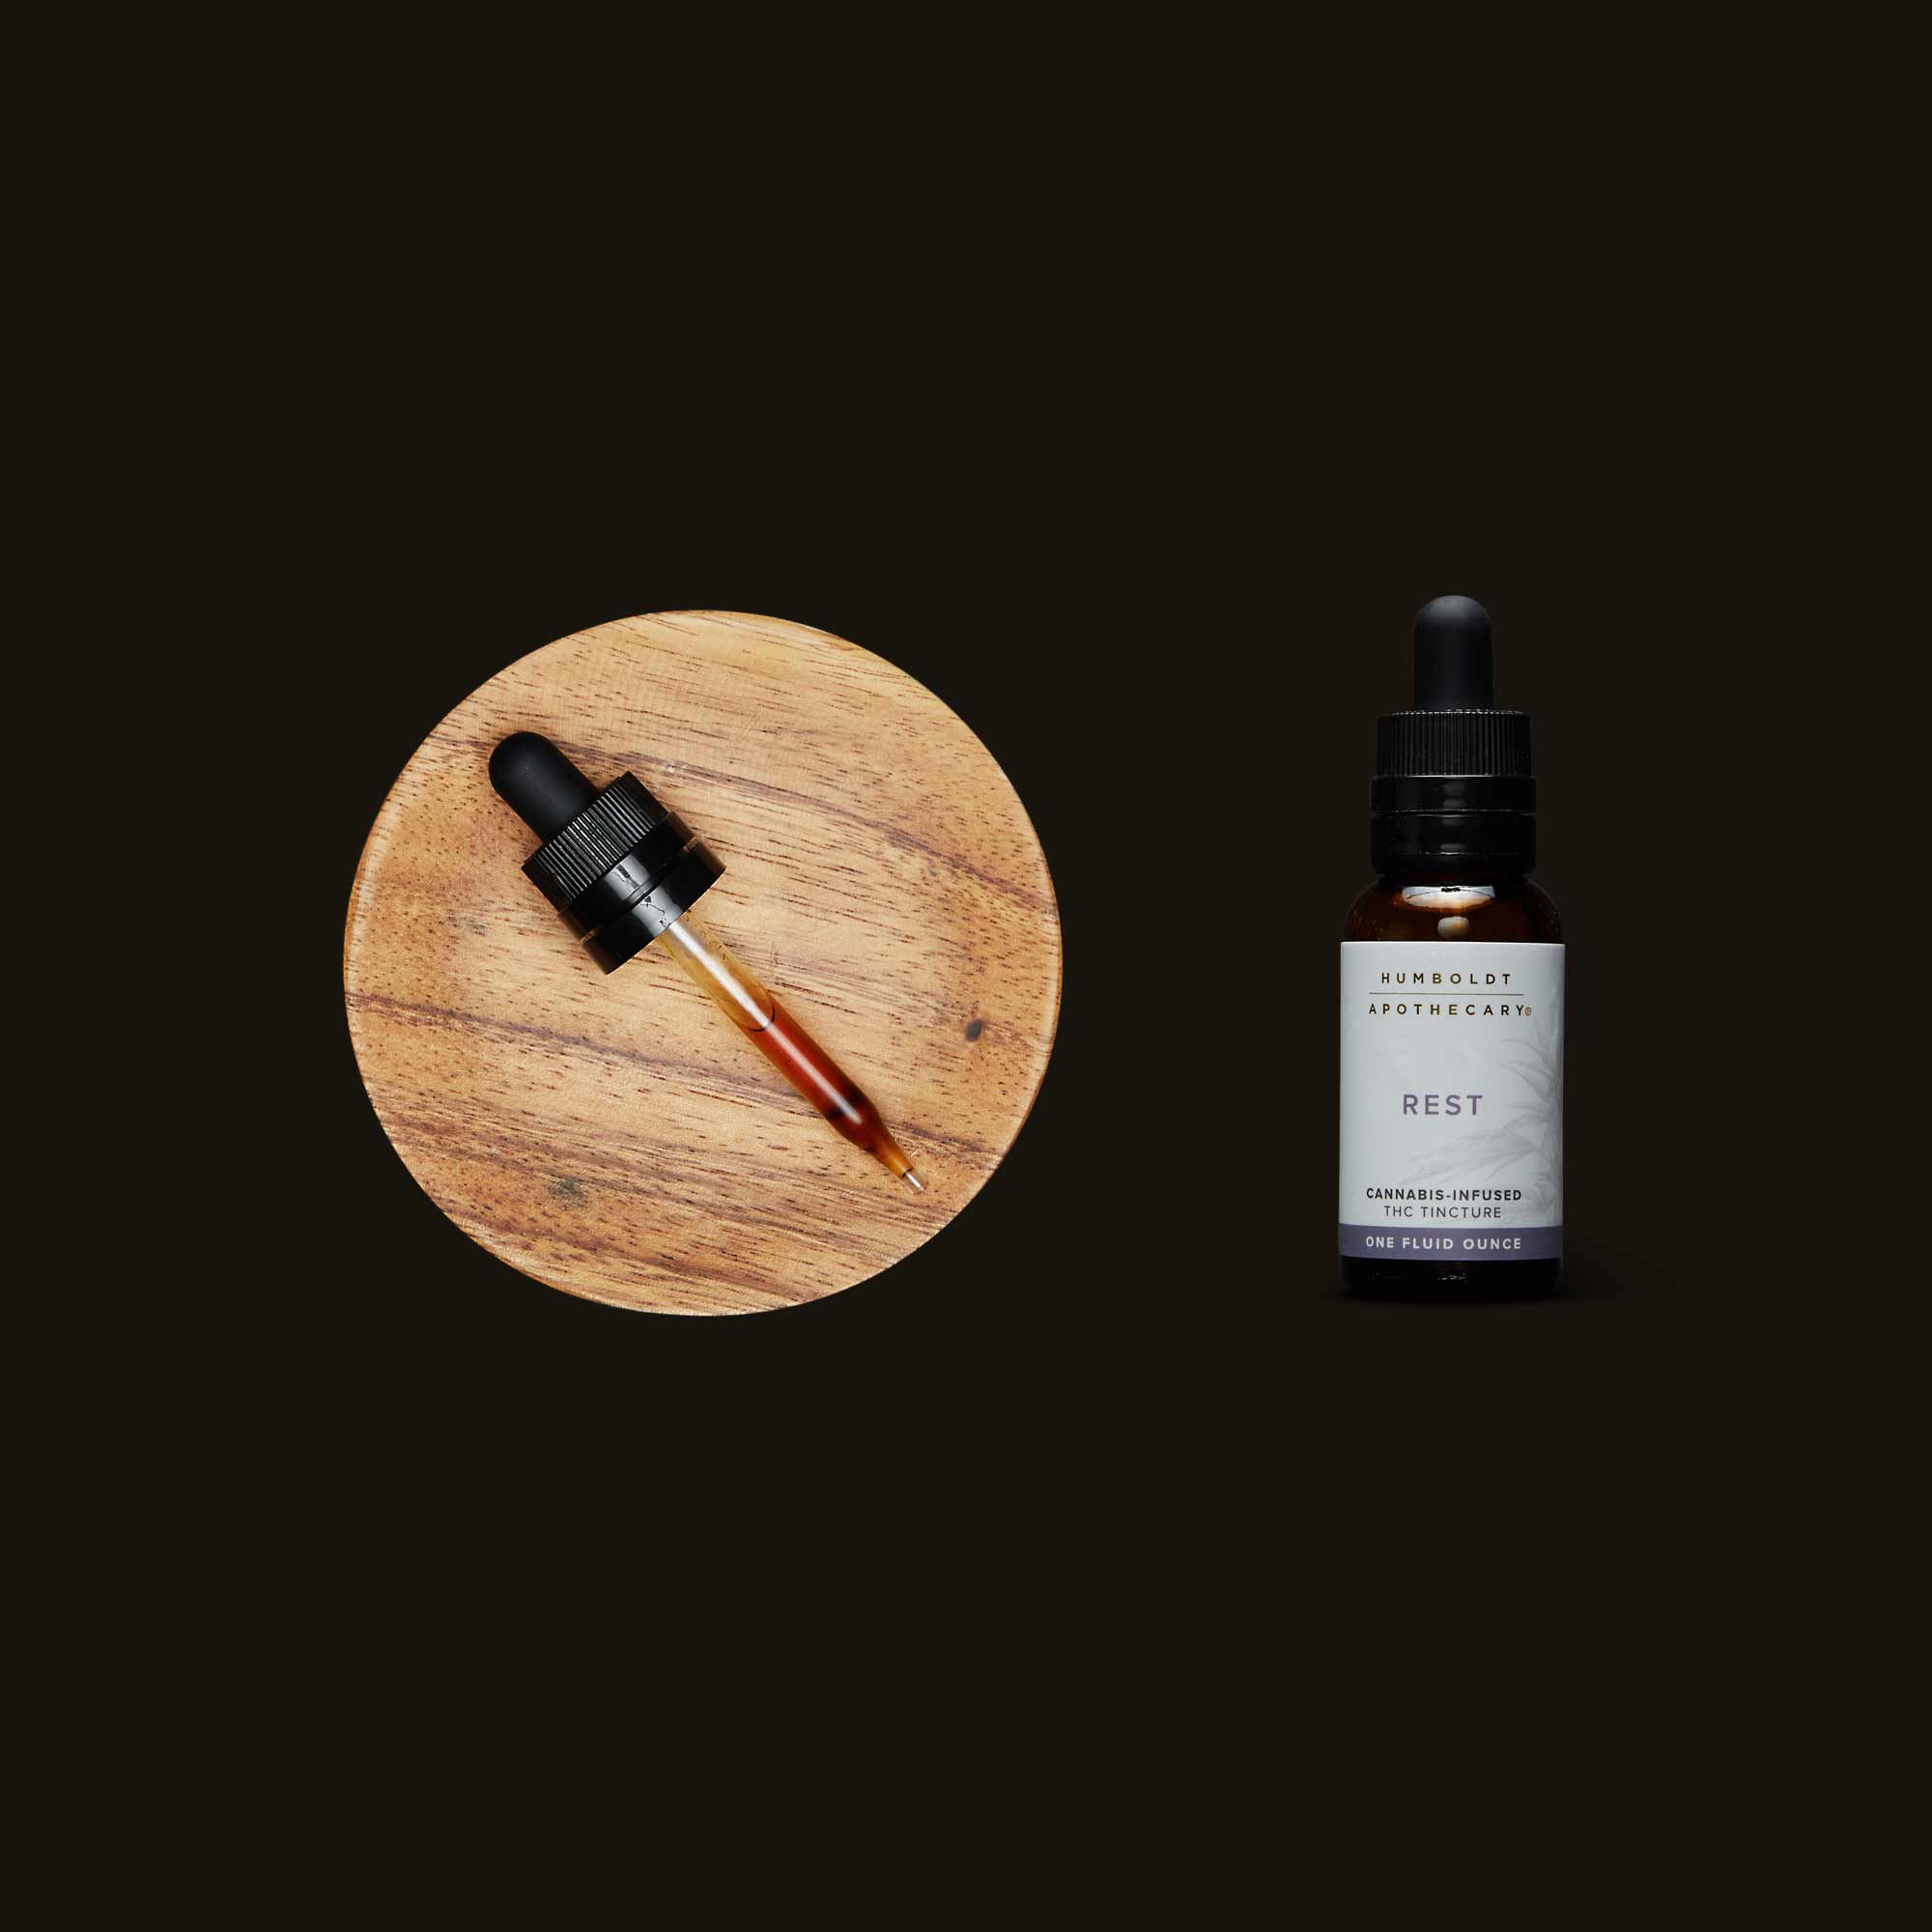 Rest by Humboldt Apothecary